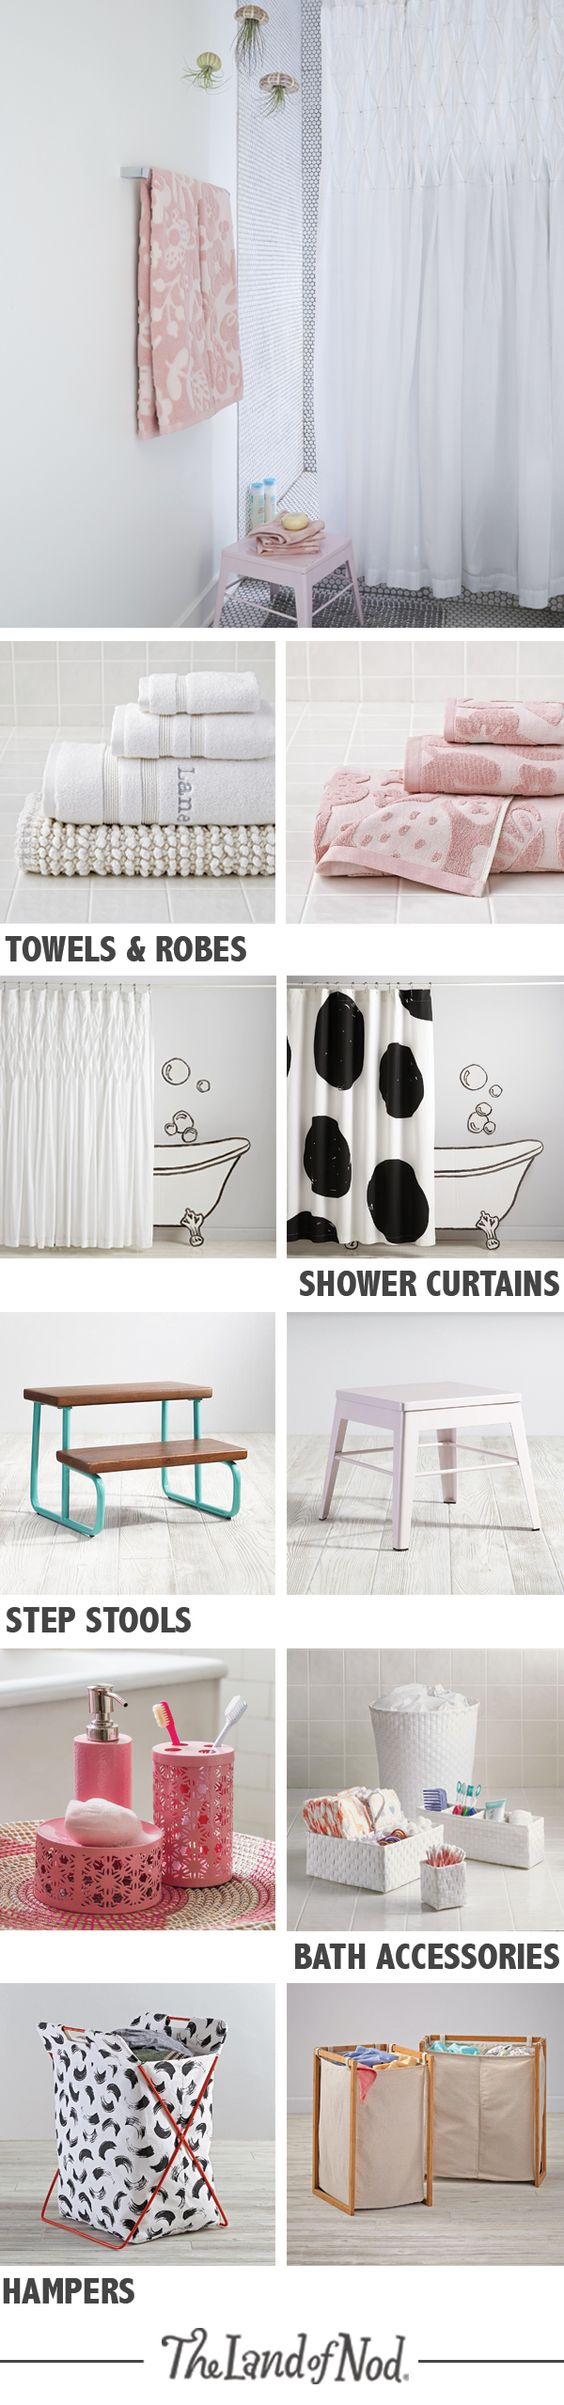 Need a design refresher the land of nod has tons of kids bathroom the land of nod has tons of kids bathroom ideas for girls and boys from kids towels and robes to bath toys there are ton pinteres geotapseo Choice Image